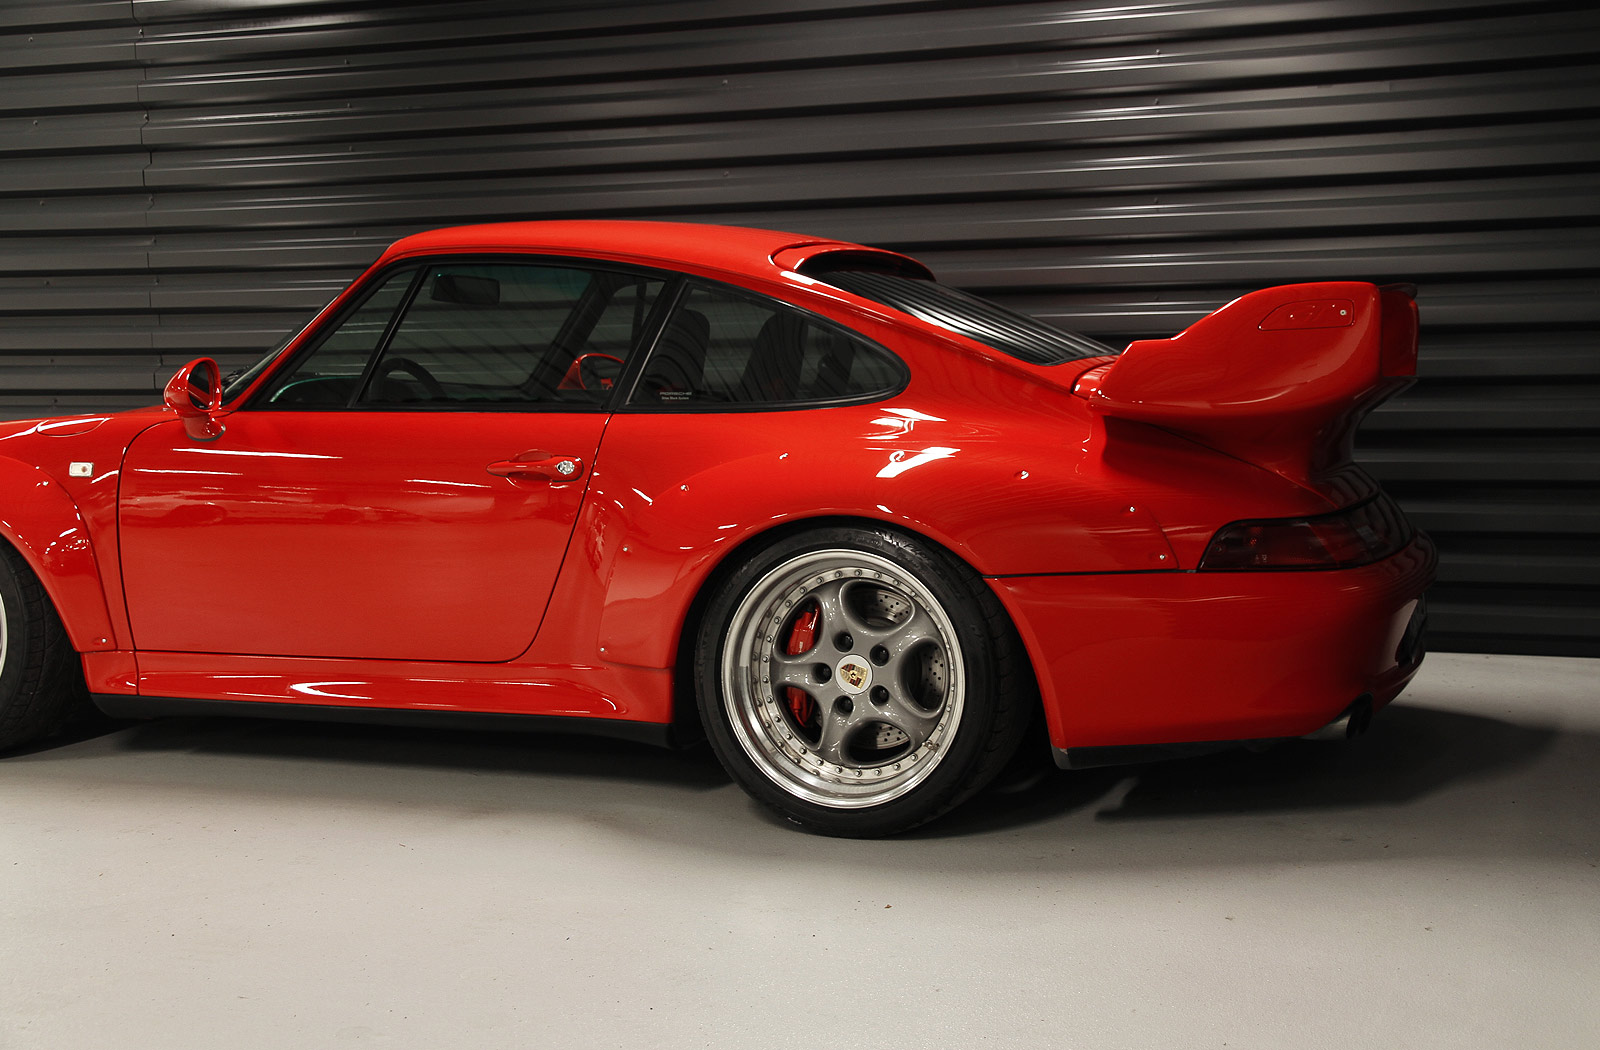 porsche 911 gt2 wiki porsche 911 gt2 993 at the need for speed wiki need for speed series info. Black Bedroom Furniture Sets. Home Design Ideas